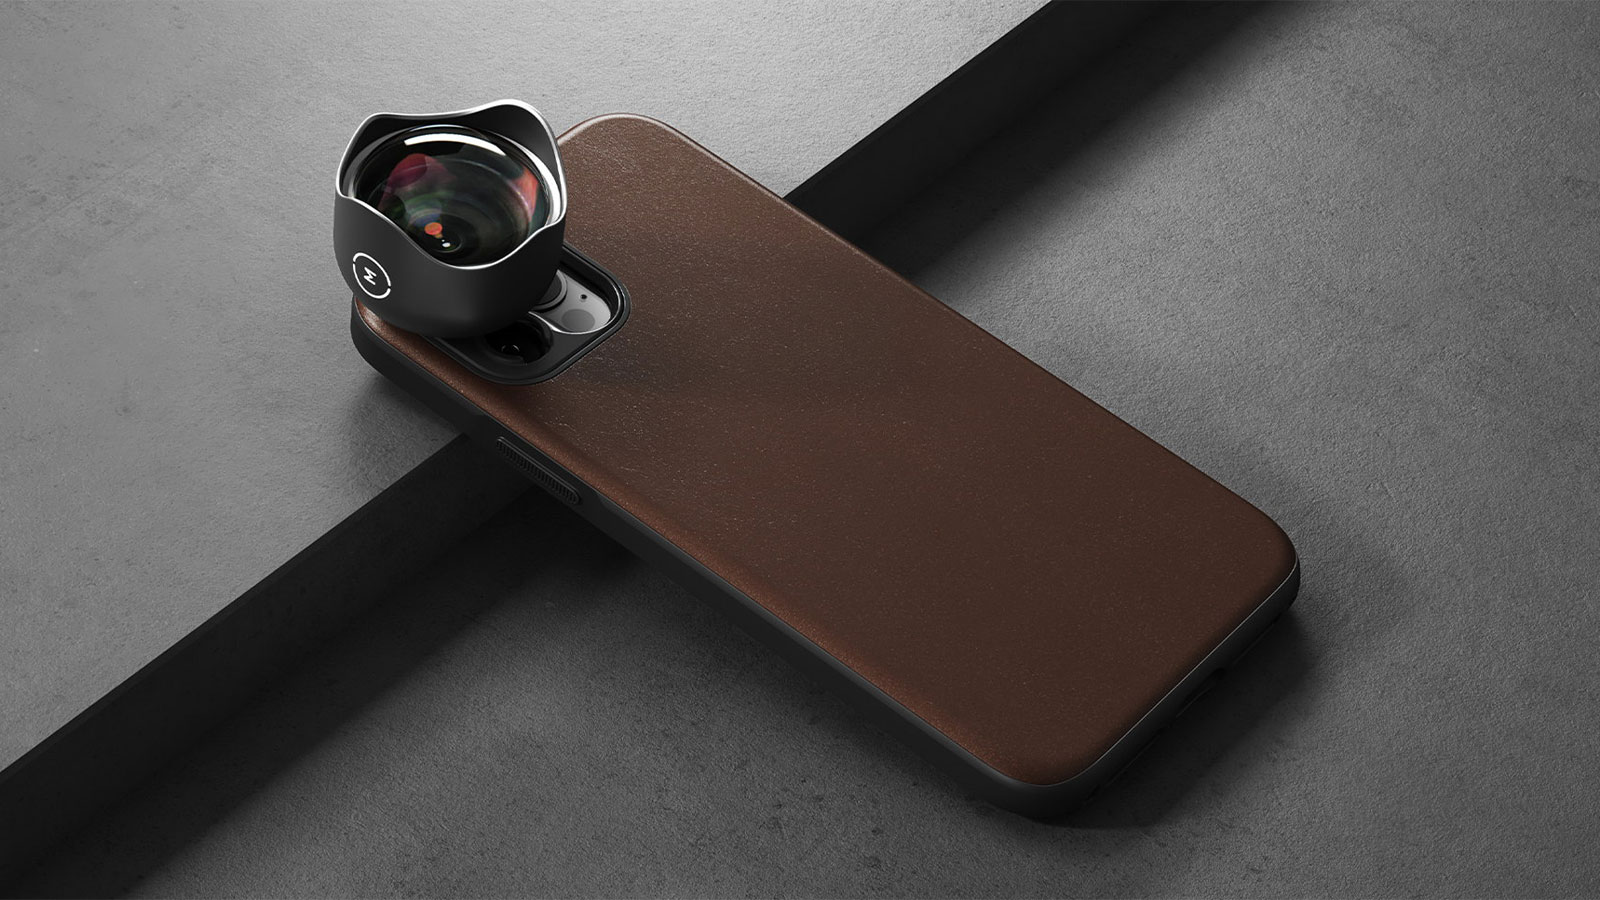 Nomad iPhone 12 Rugged Case with Moment Lens Compatibility